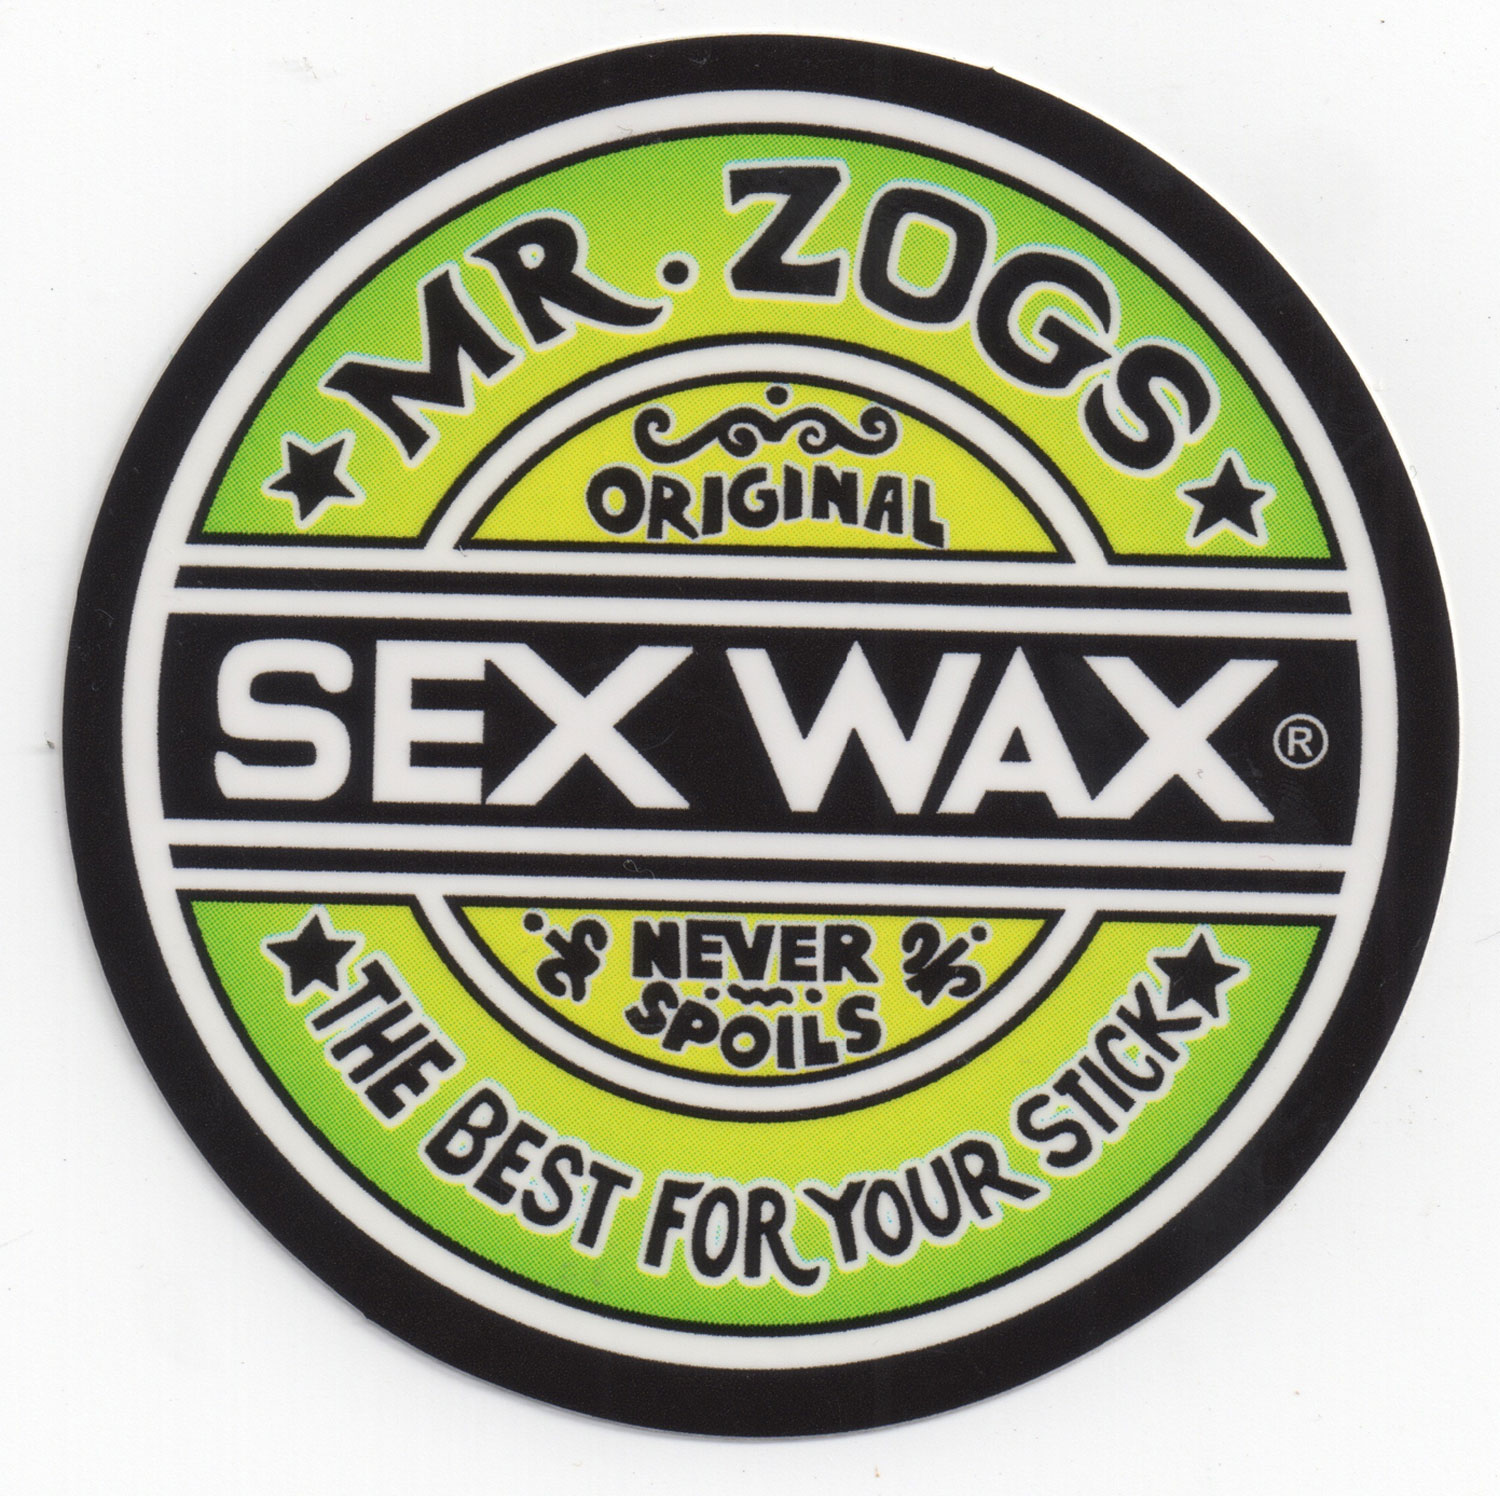 Apologise, but, using sex wax